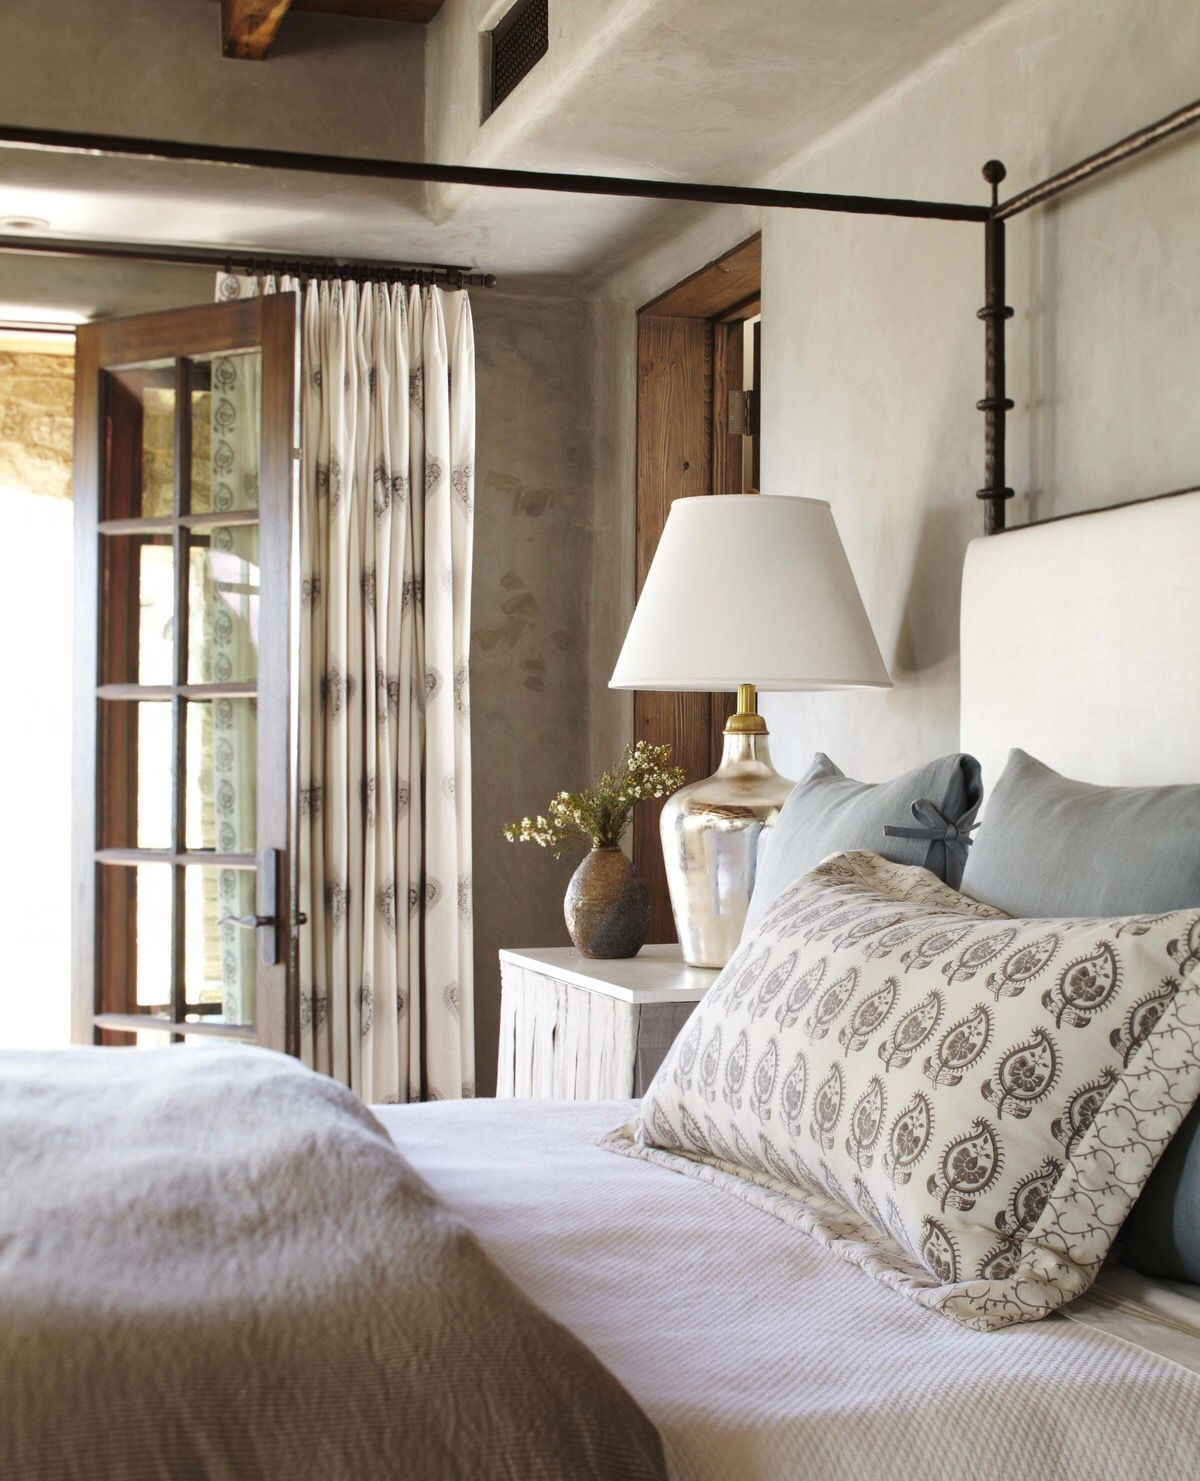 Cosy Bedroom Ideas For A Restful Retreat: Pin By SUSIE By Design On MOUNTAIN LODGE